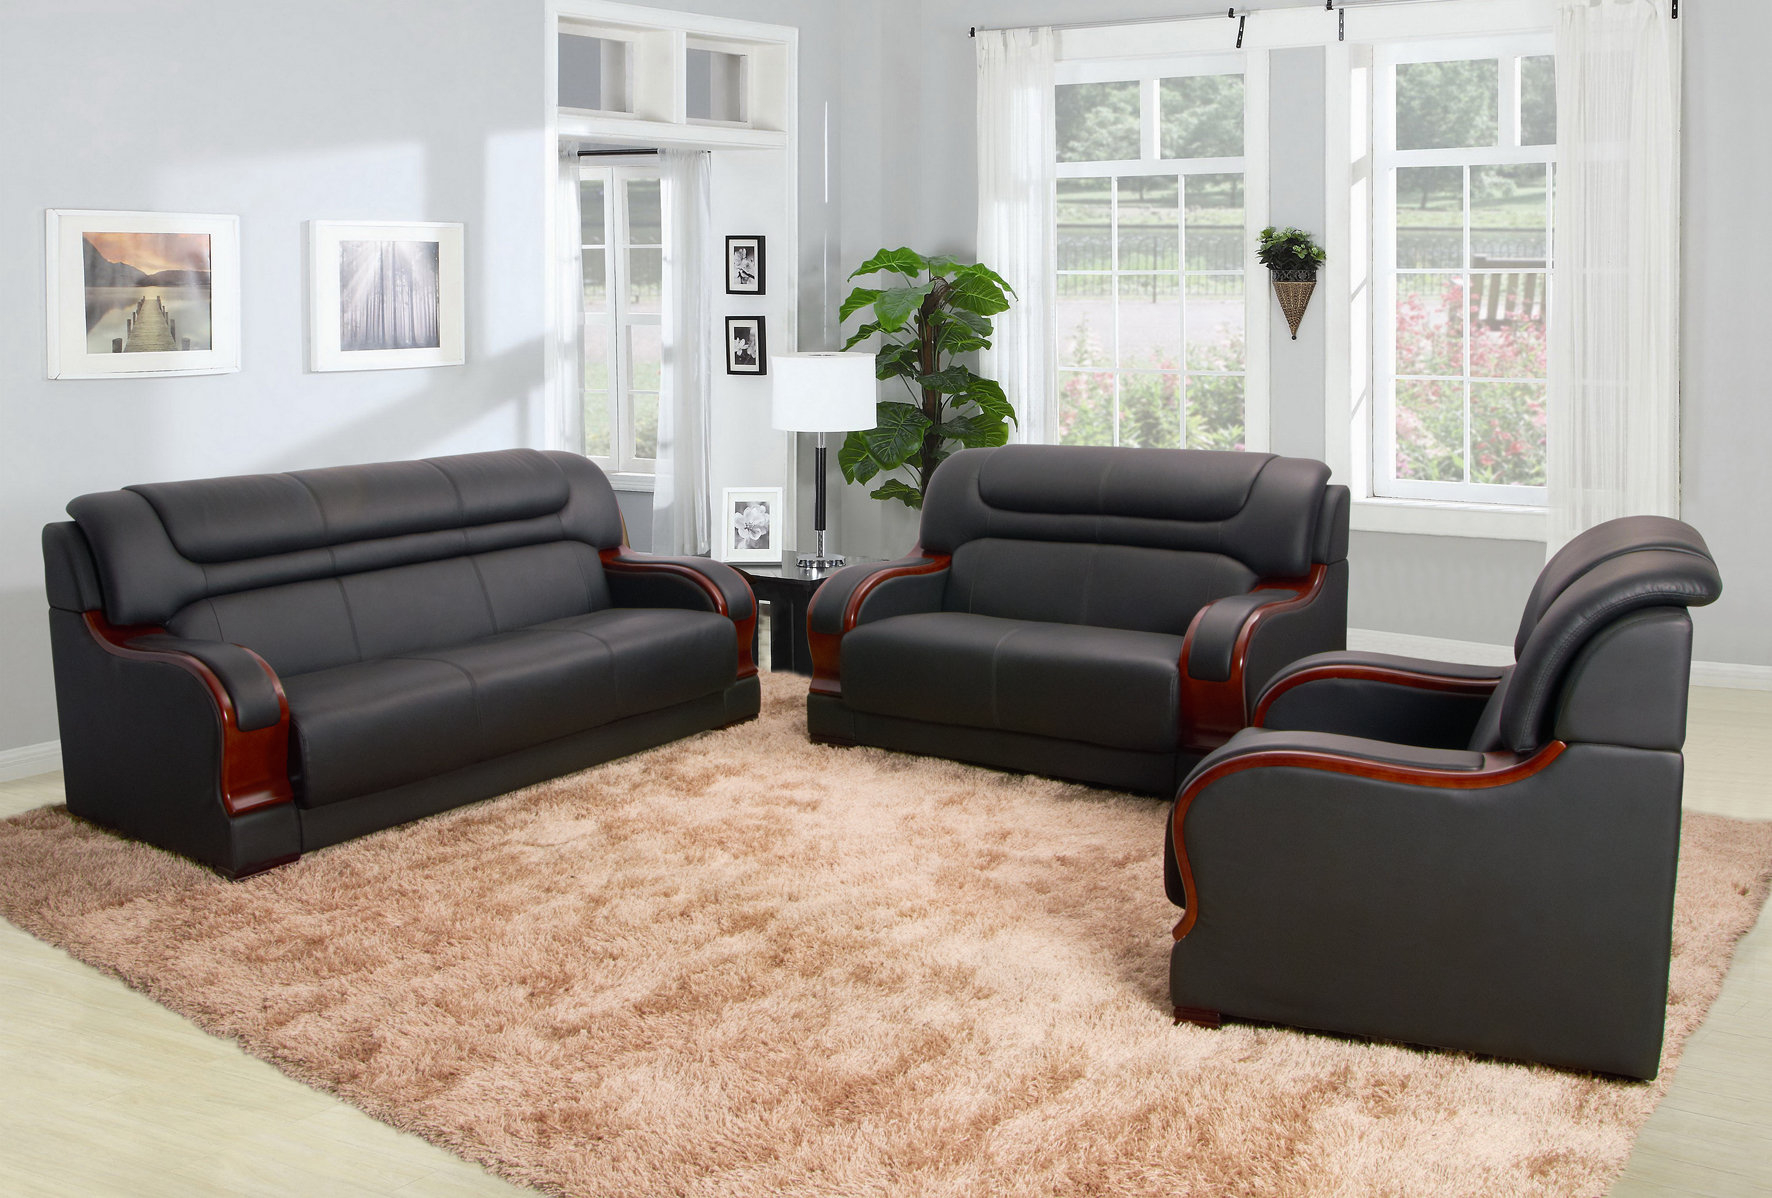 Orren Ellis Cahlil Leather 3 Piece Living Room Set Wayfair intended for 12 Genius Ways How to Upgrade Living Room Sets Leather